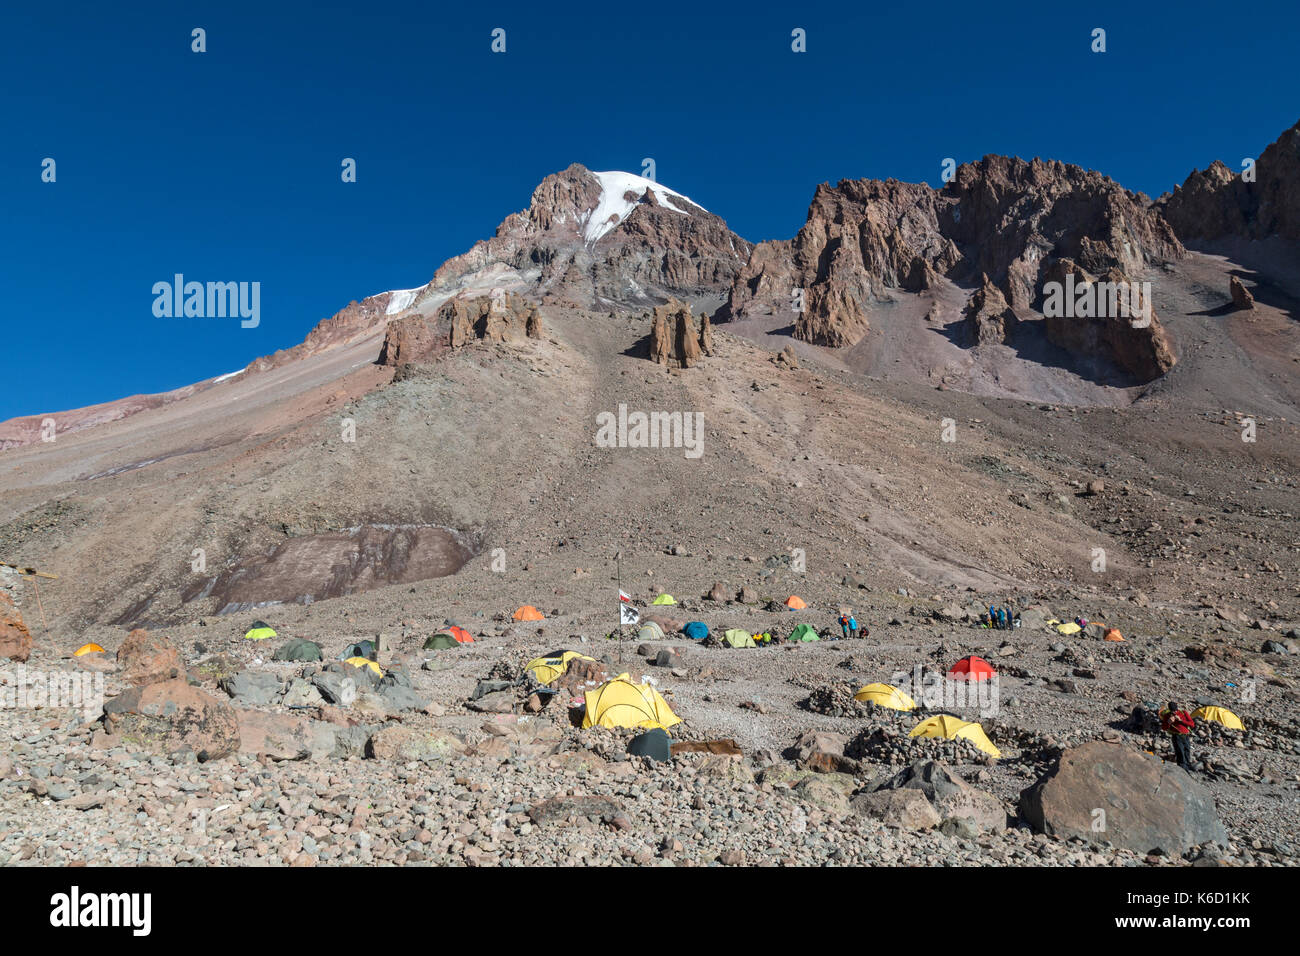 A large number of tents pitched below the summit of Mount Kazbek in Georgia. This is the base c& area beside the Betlemi Hut and is at 3653 metres & A large number of tents pitched below the summit of Mount Kazbek ...